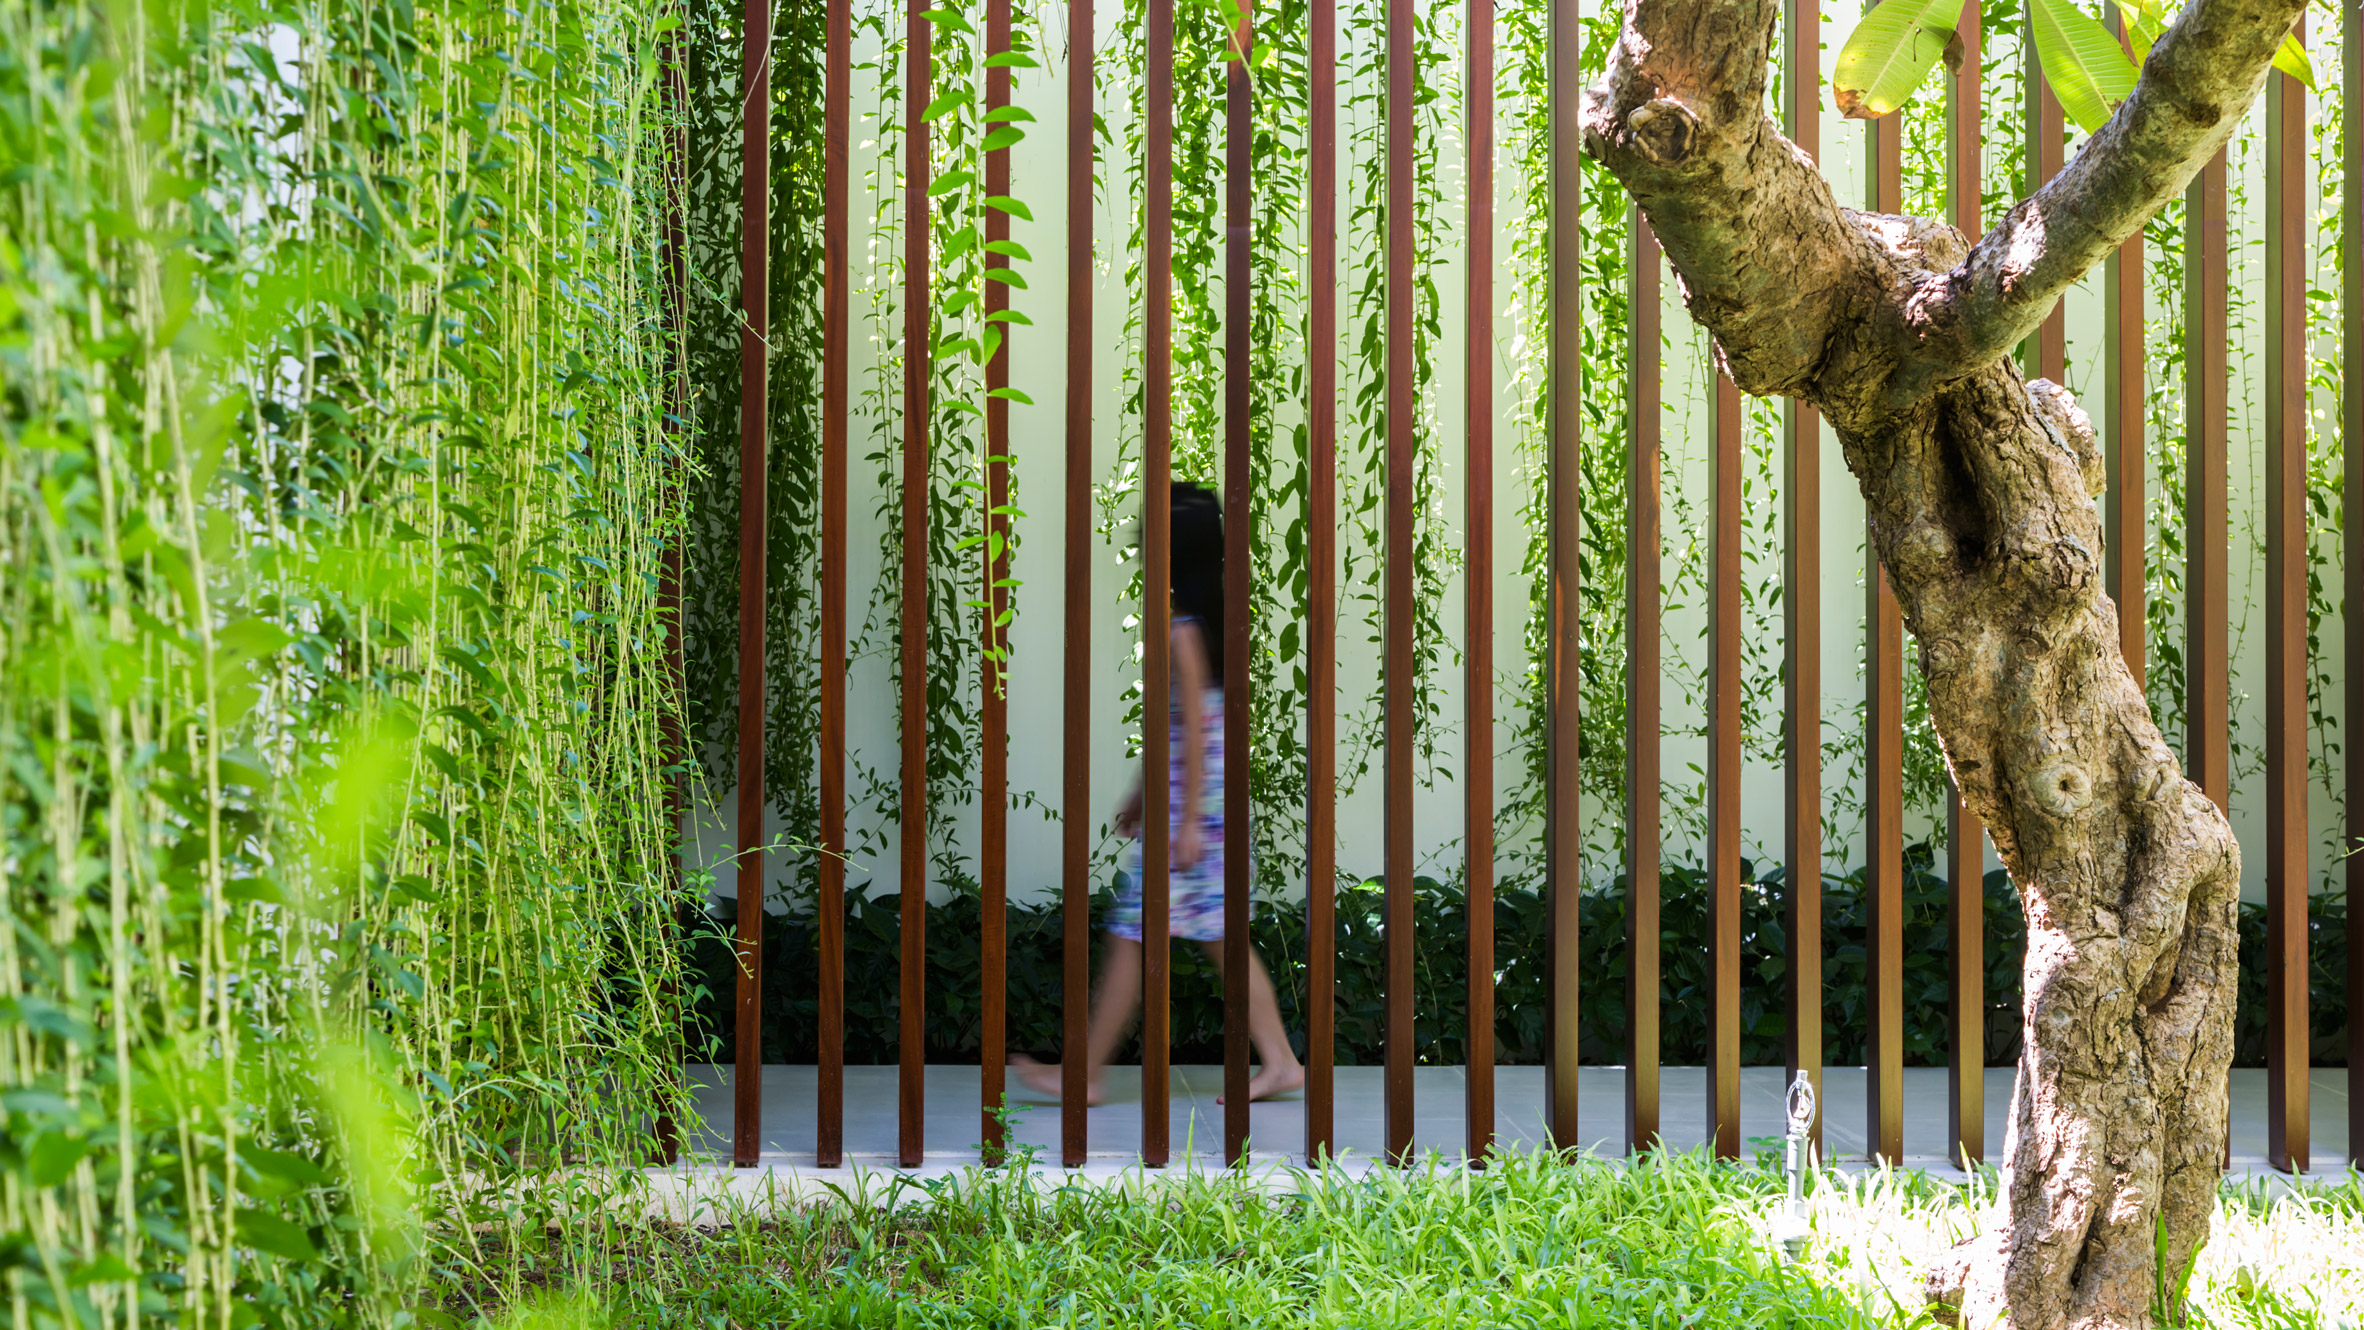 Modern Babylon Hanging Plants Serve As Green Walls Window Shades likewise Websites And Apps To Help With Your Interior Design Project moreover Bathrooms With Ocean View additionally 10000048 together with Minimalist Home No47 House By Hp Architects. on design house in vietnam